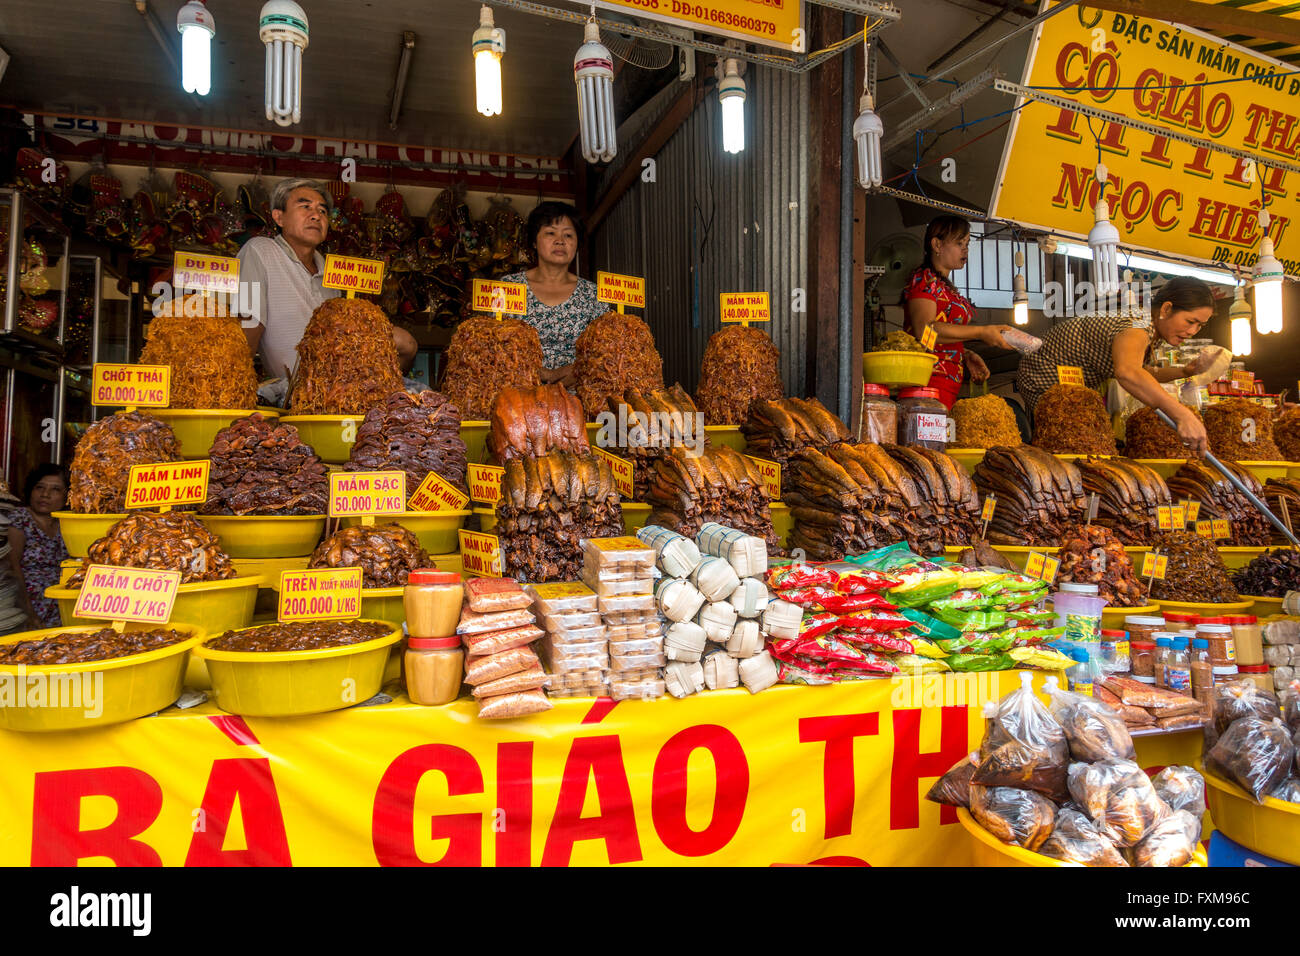 Dried meat and fish market stall on land at Chau Doc, Vietnam Stock Photo